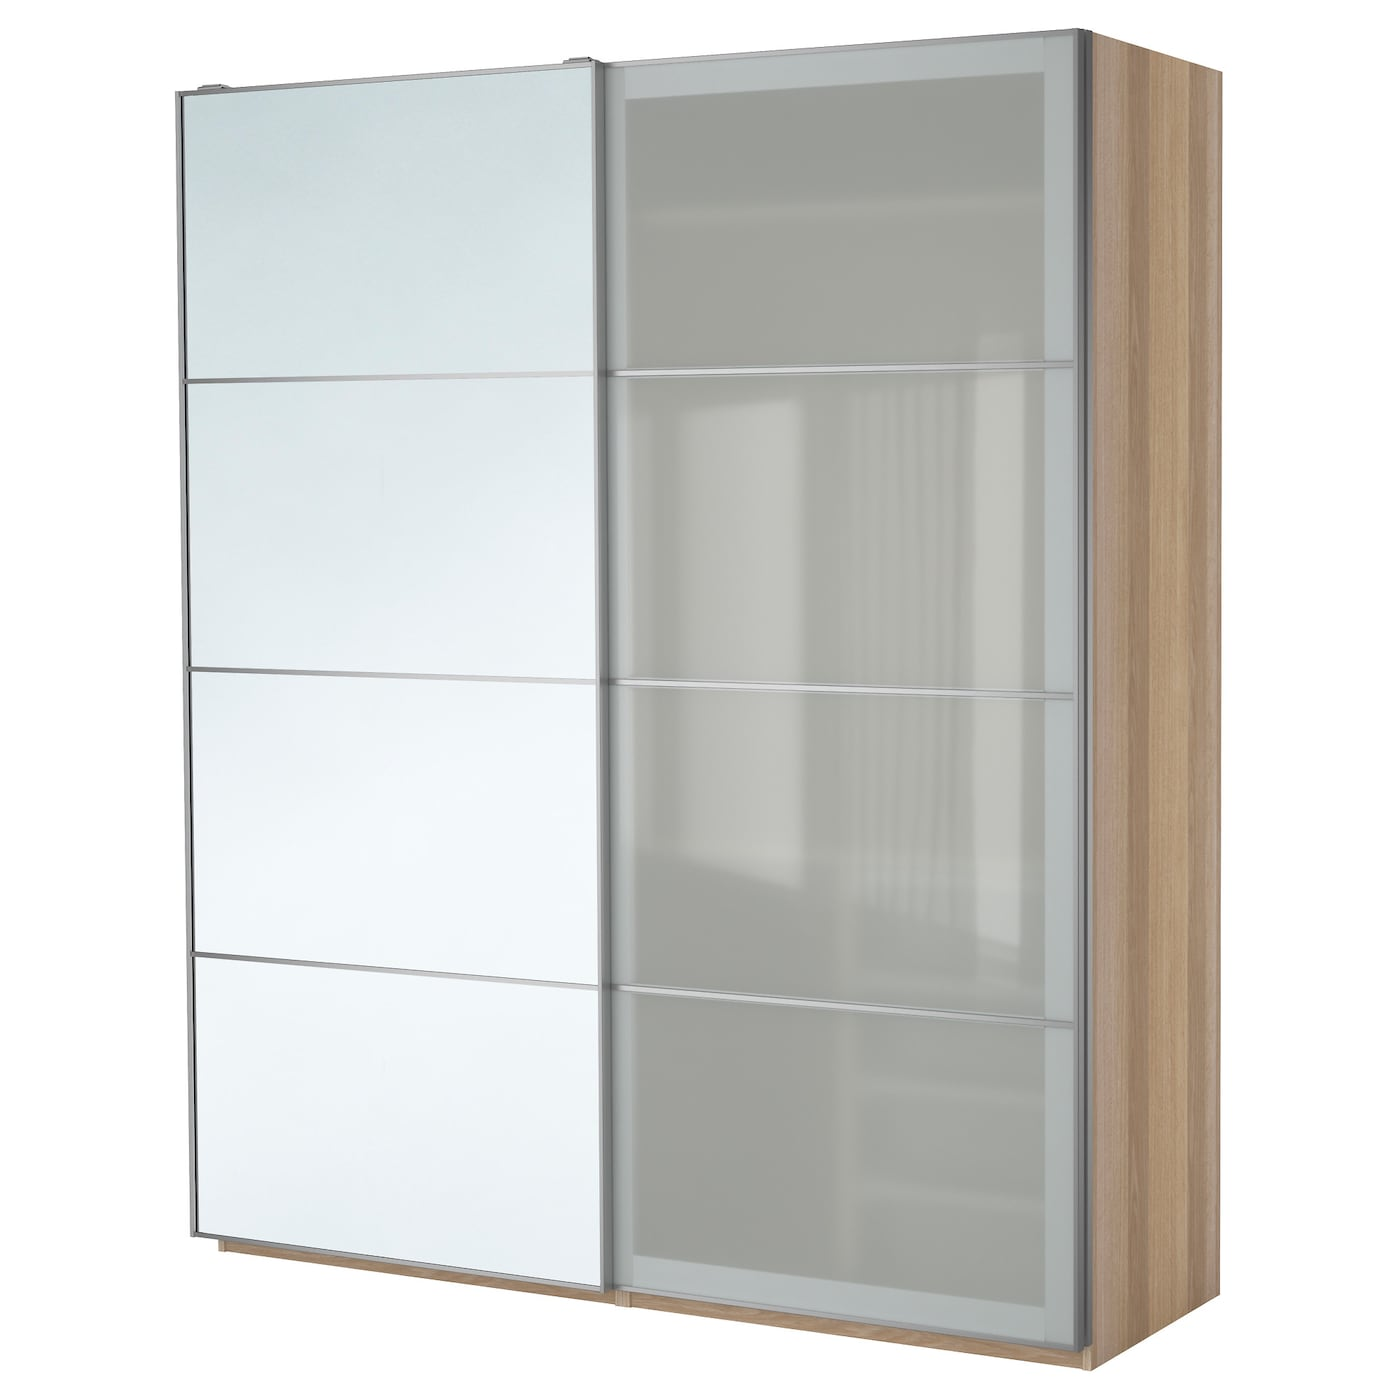 pax wardrobe white stained oak effect auli sekken 200x66x236 cm ikea. Black Bedroom Furniture Sets. Home Design Ideas